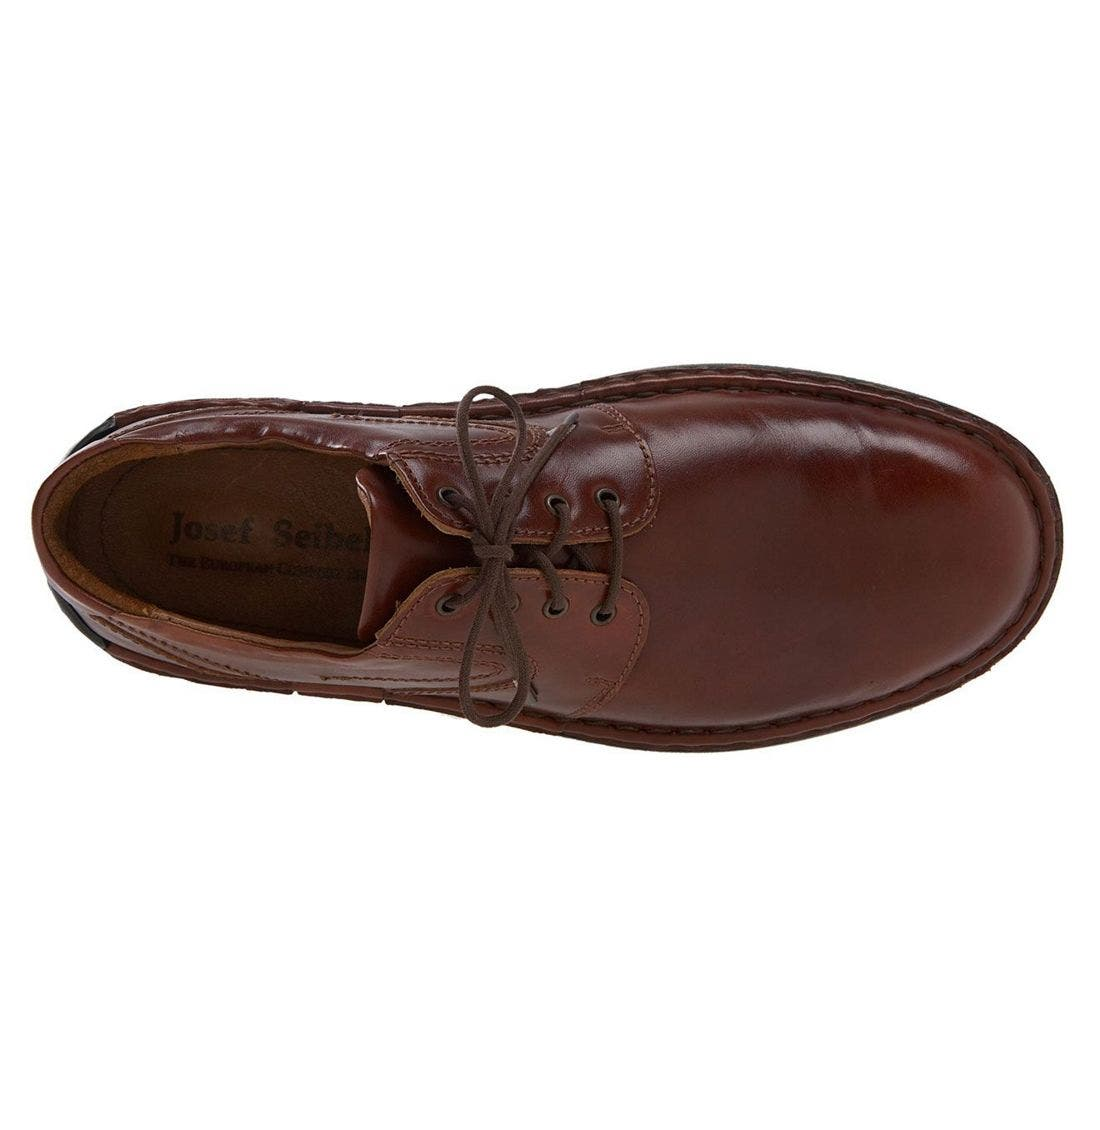 JOSEF SEIBEL,                             'Walt' Casual Oxford,                             Alternate thumbnail 2, color,                             ROMA BRANDY